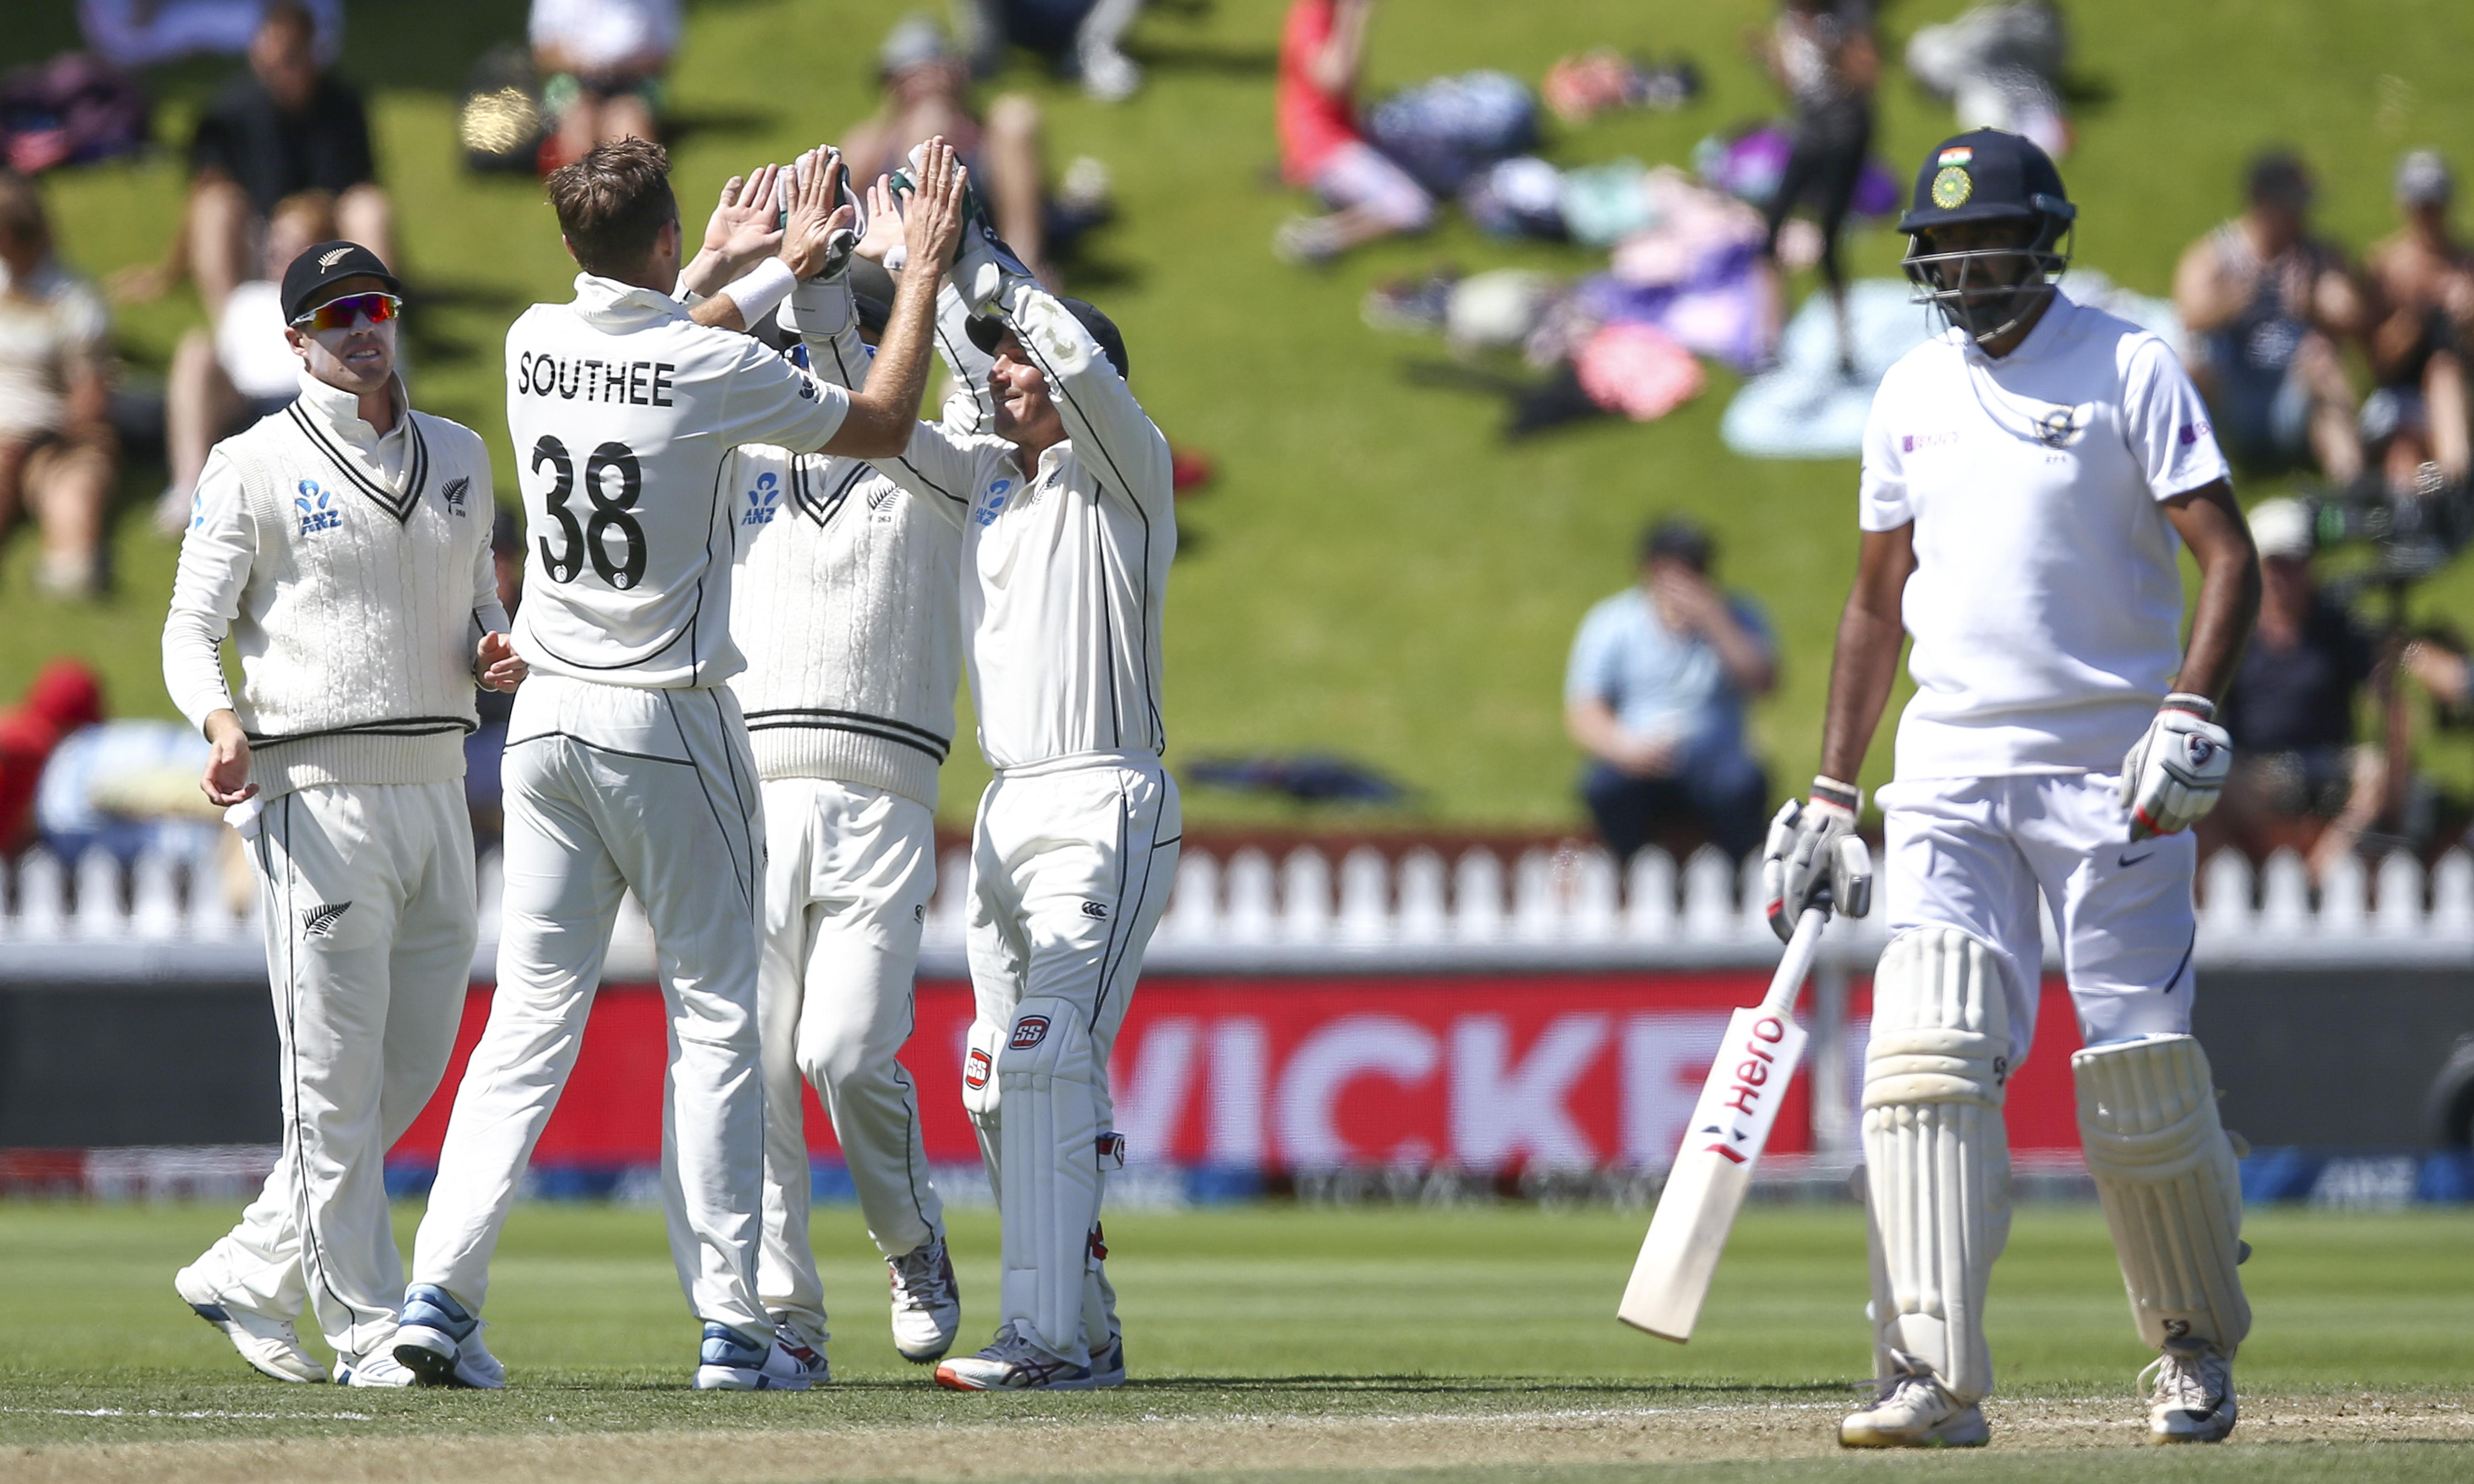 Tim Southee rips through India as New Zealand seal massive first Test win